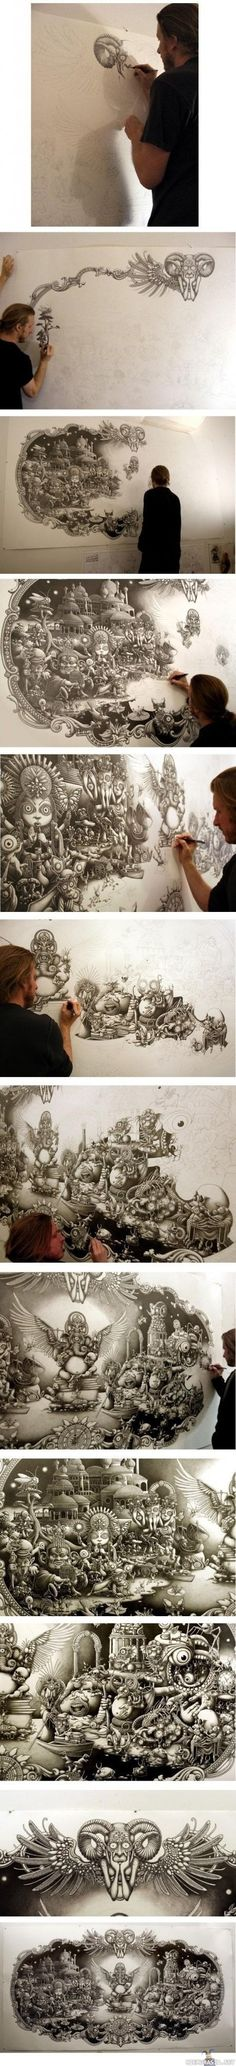 this guy is a fantastic artist! :D